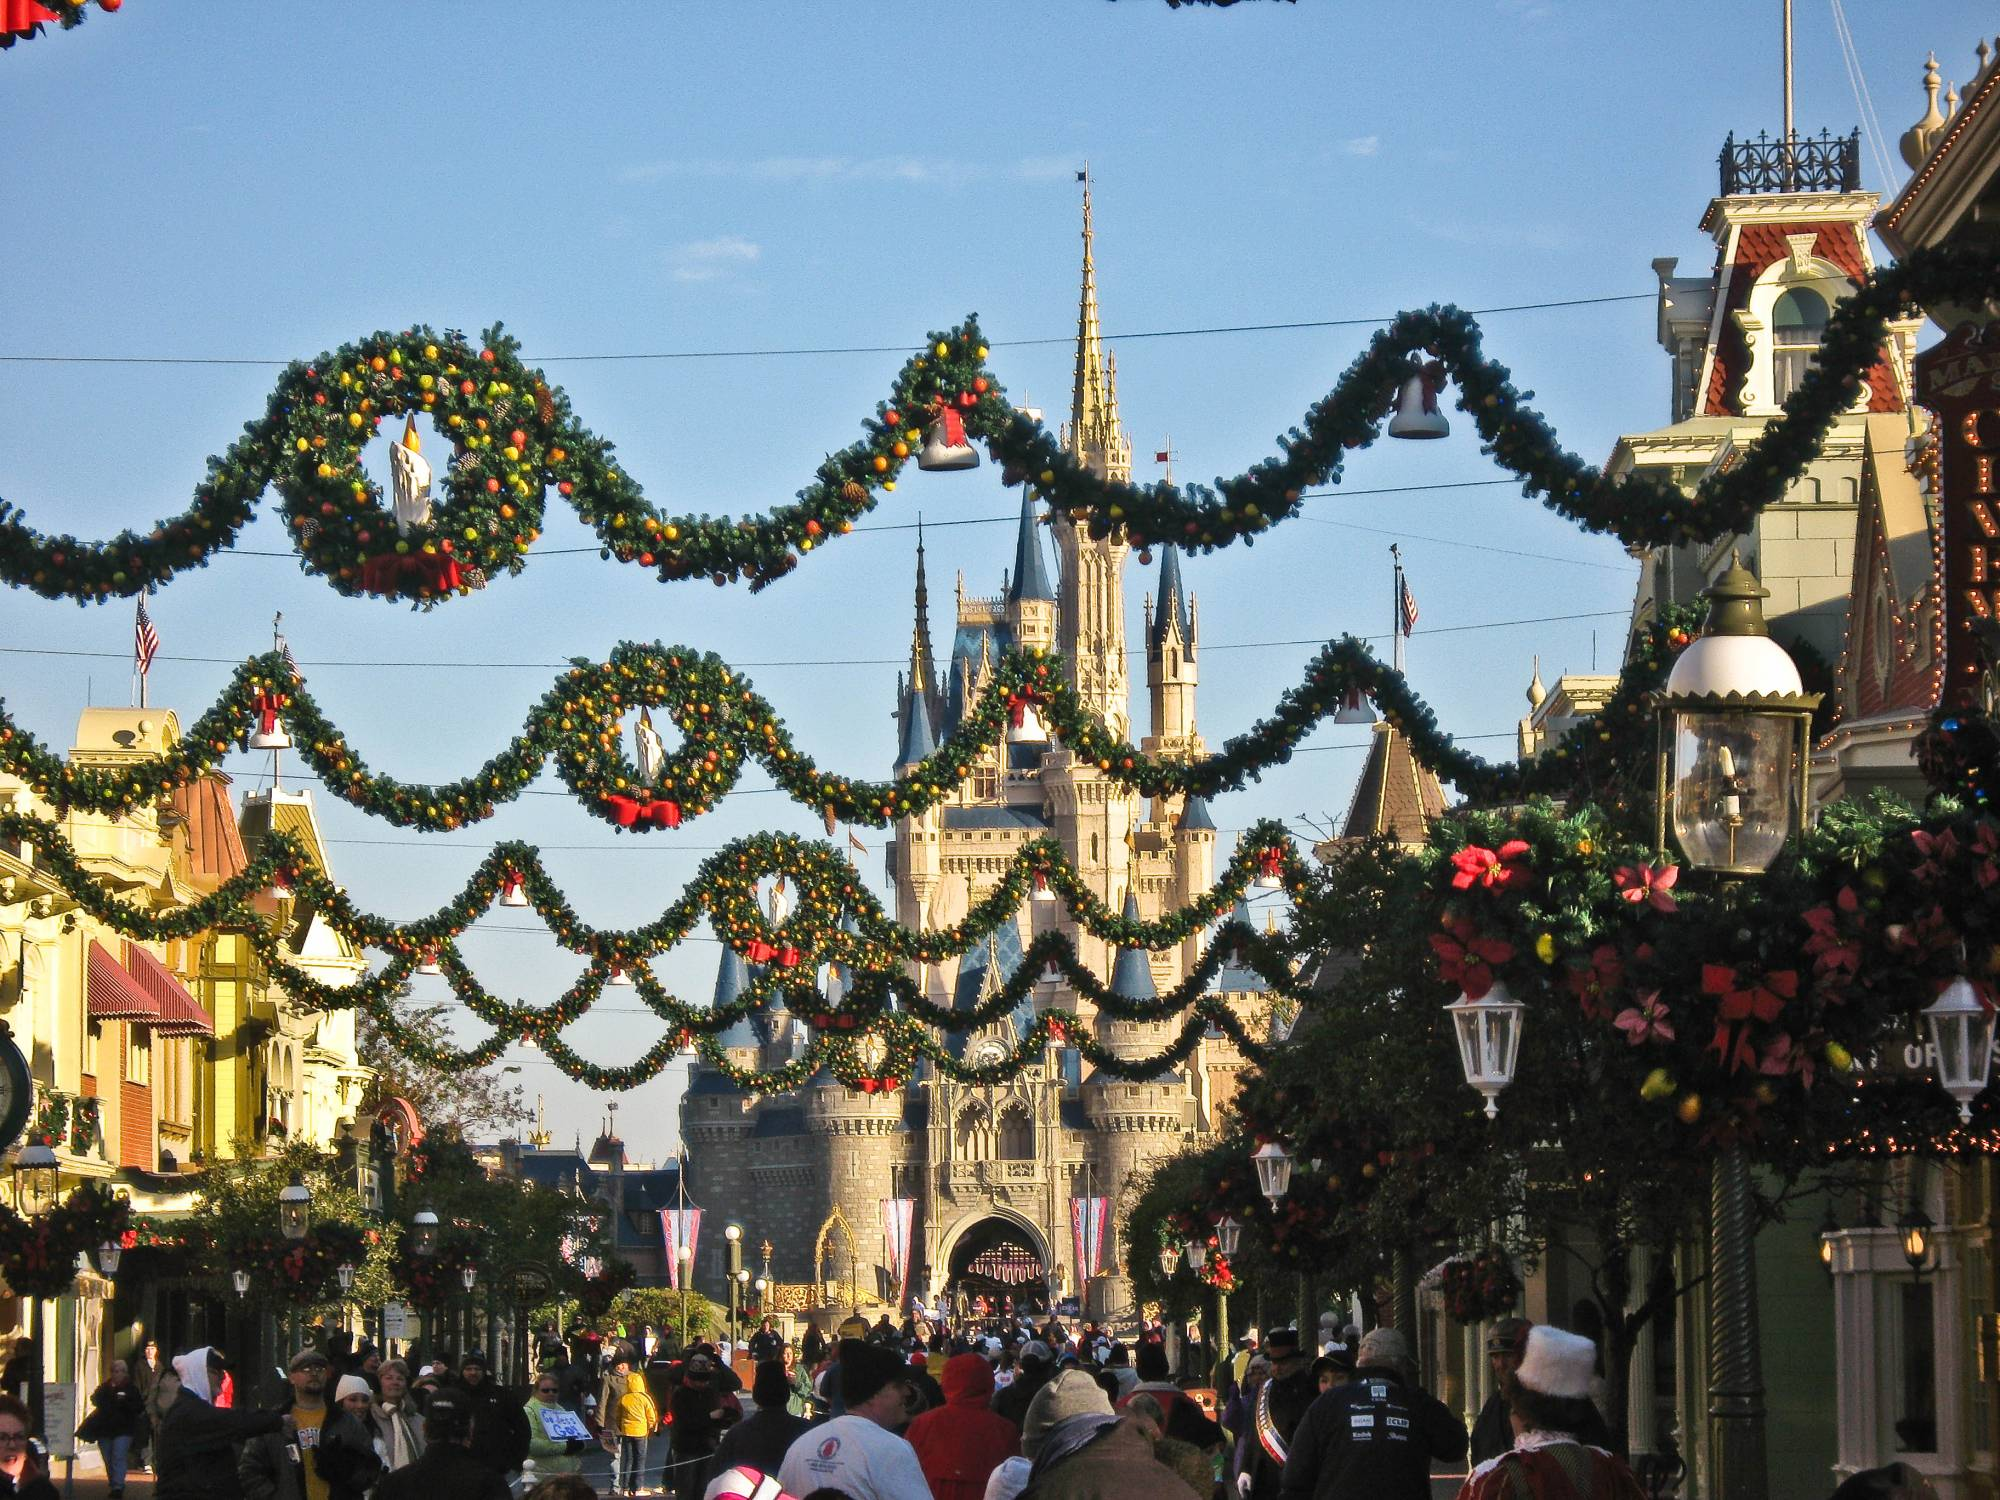 Magic Kingdom - Main Street Christmas Decorations